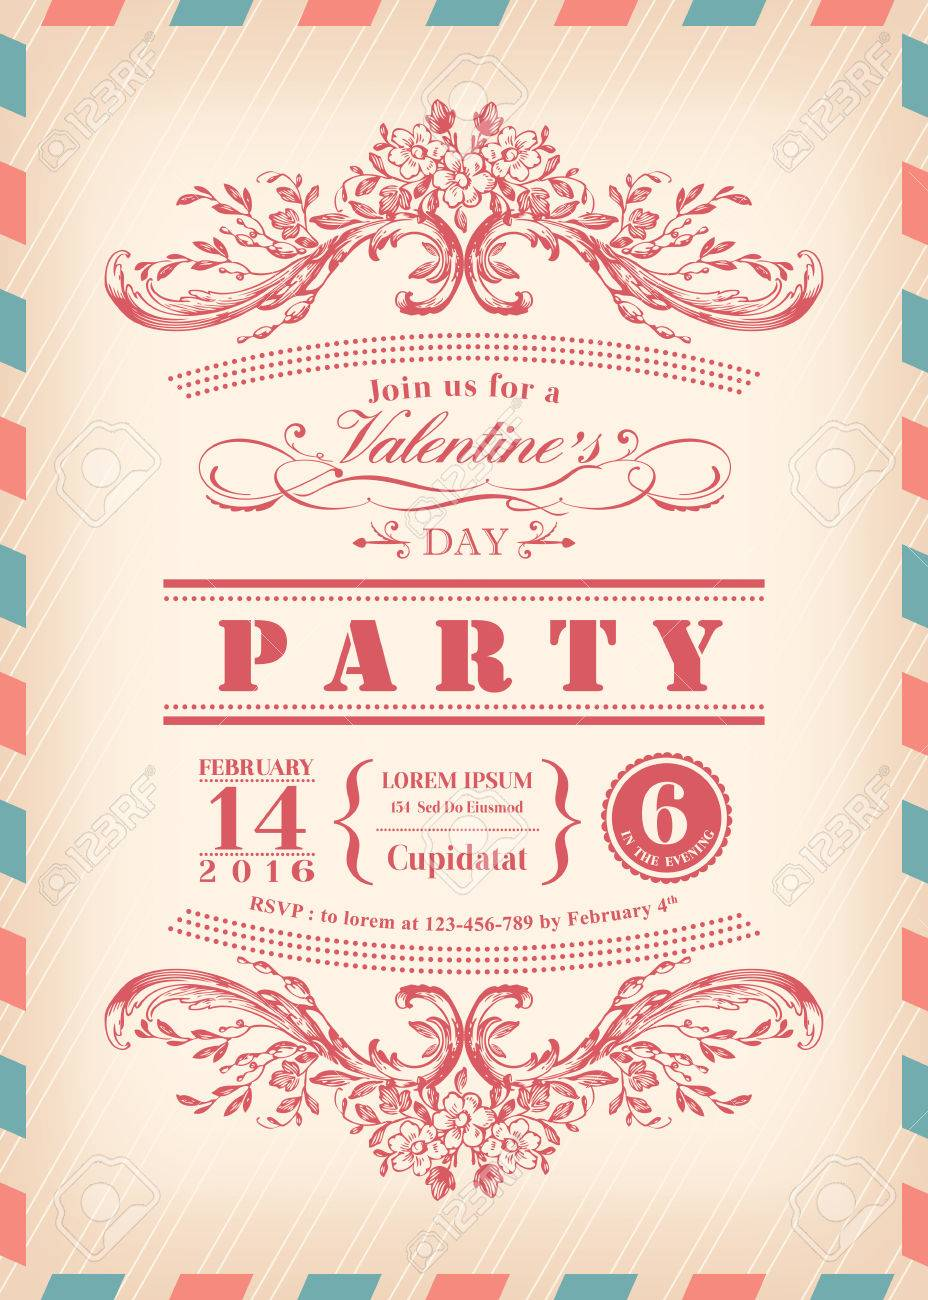 Valentine Day Card Party Invitation With Vintage Frame And Airmail ...